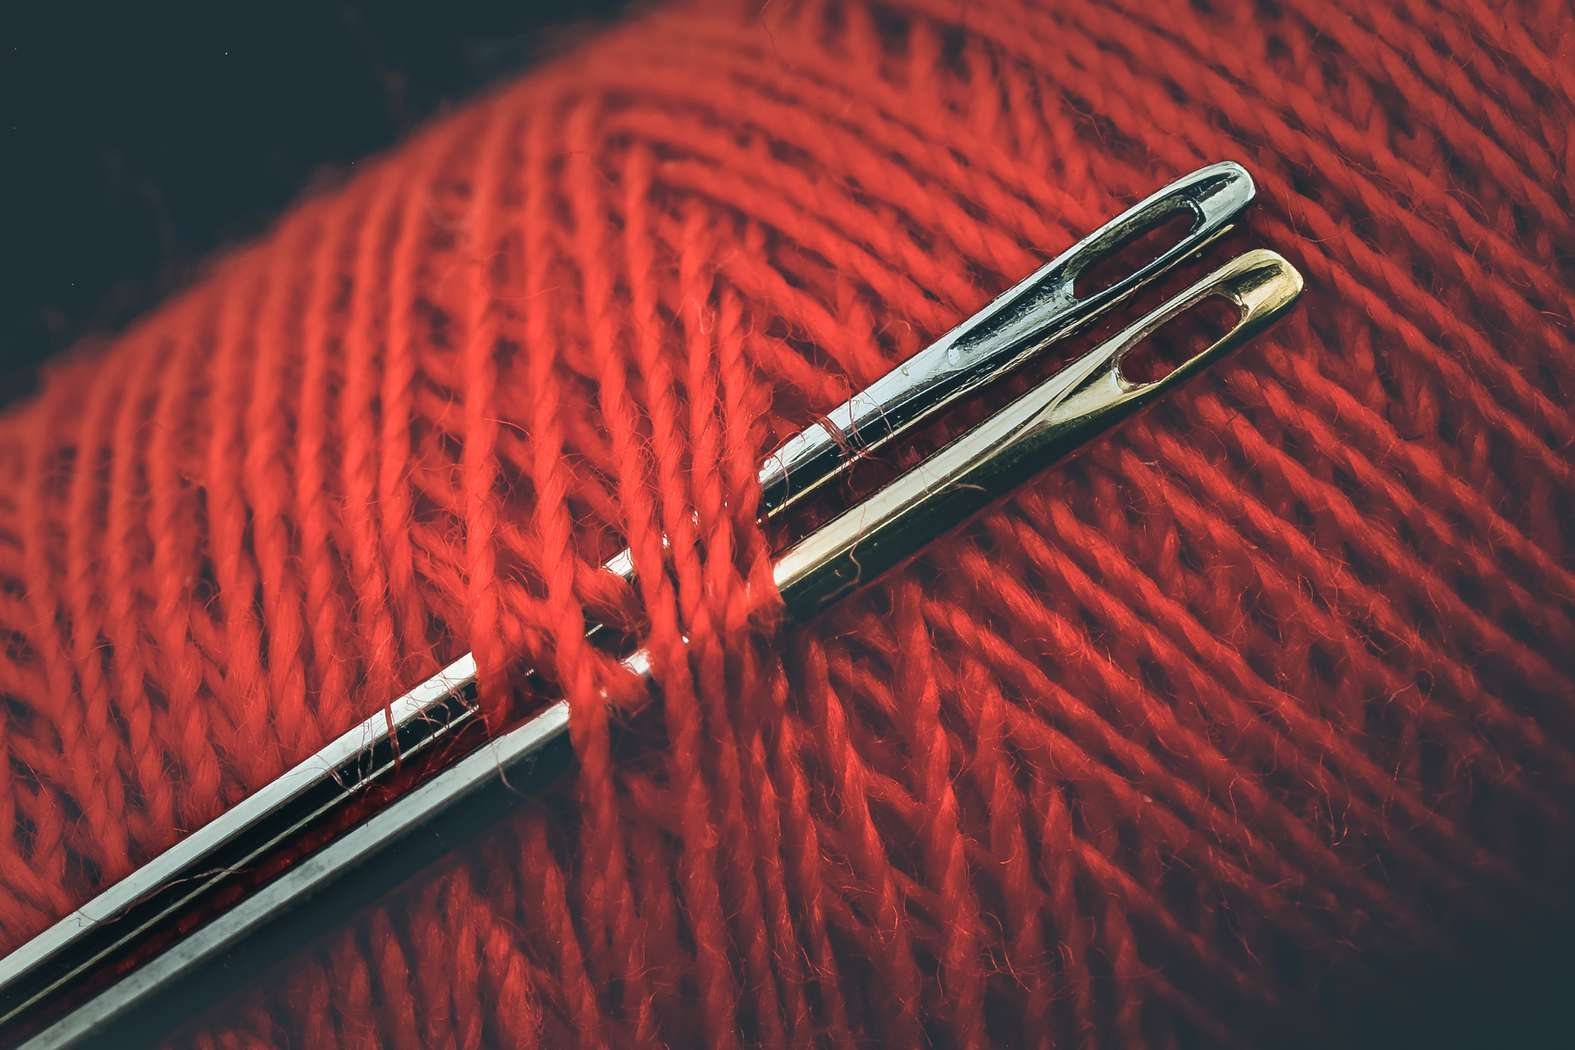 Knitting needles placed in yarn.